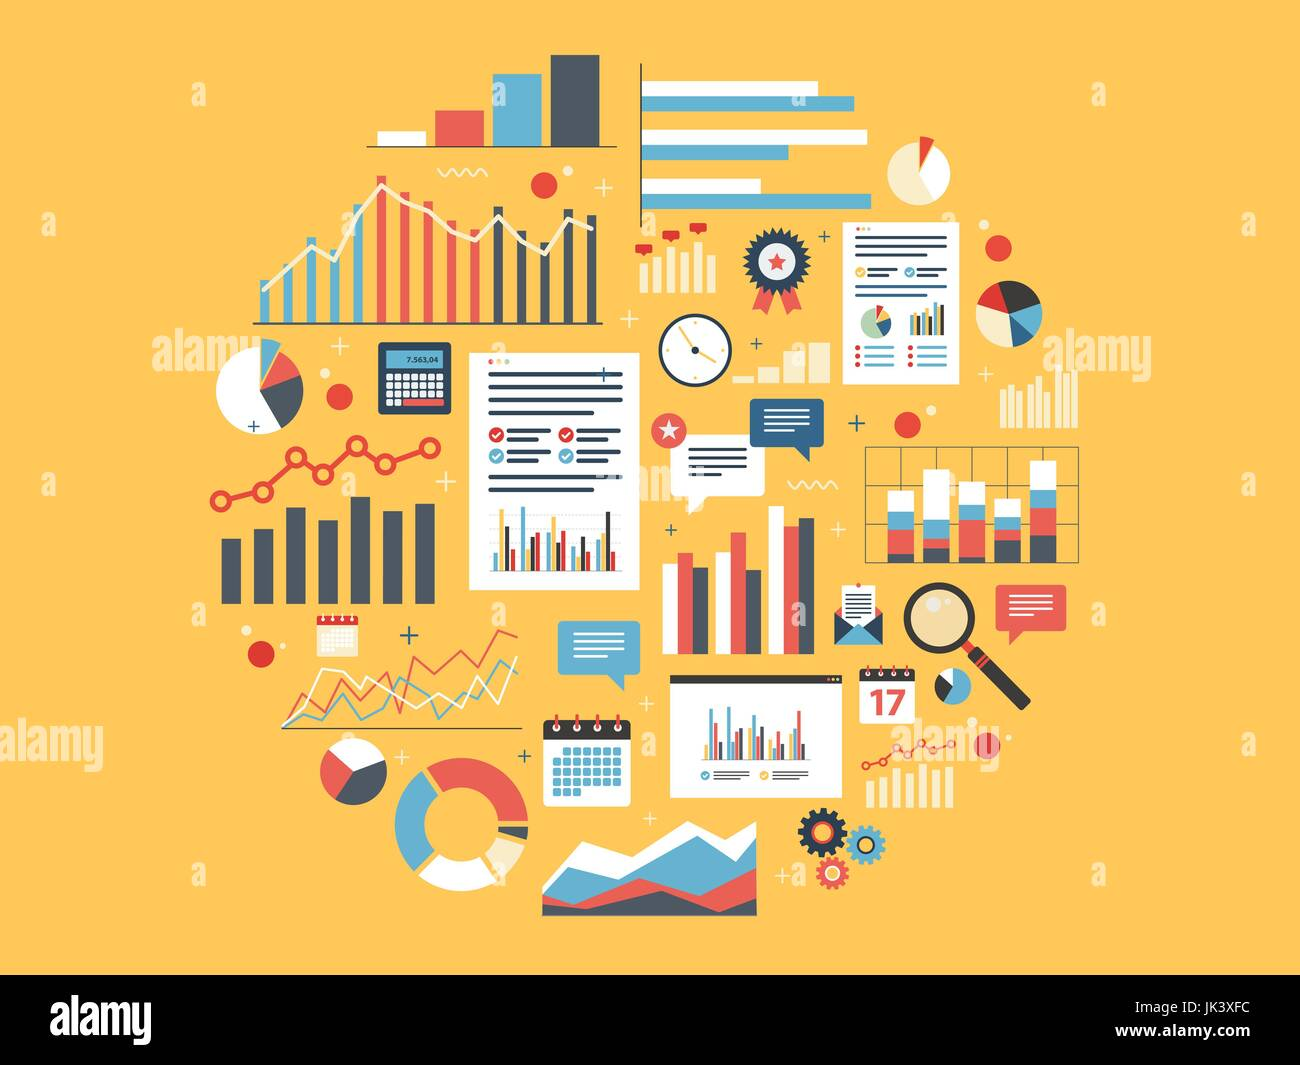 Chart with statistics and data, statistic analytics and growth report. Icons in vector illustration of calculator, - Stock Image